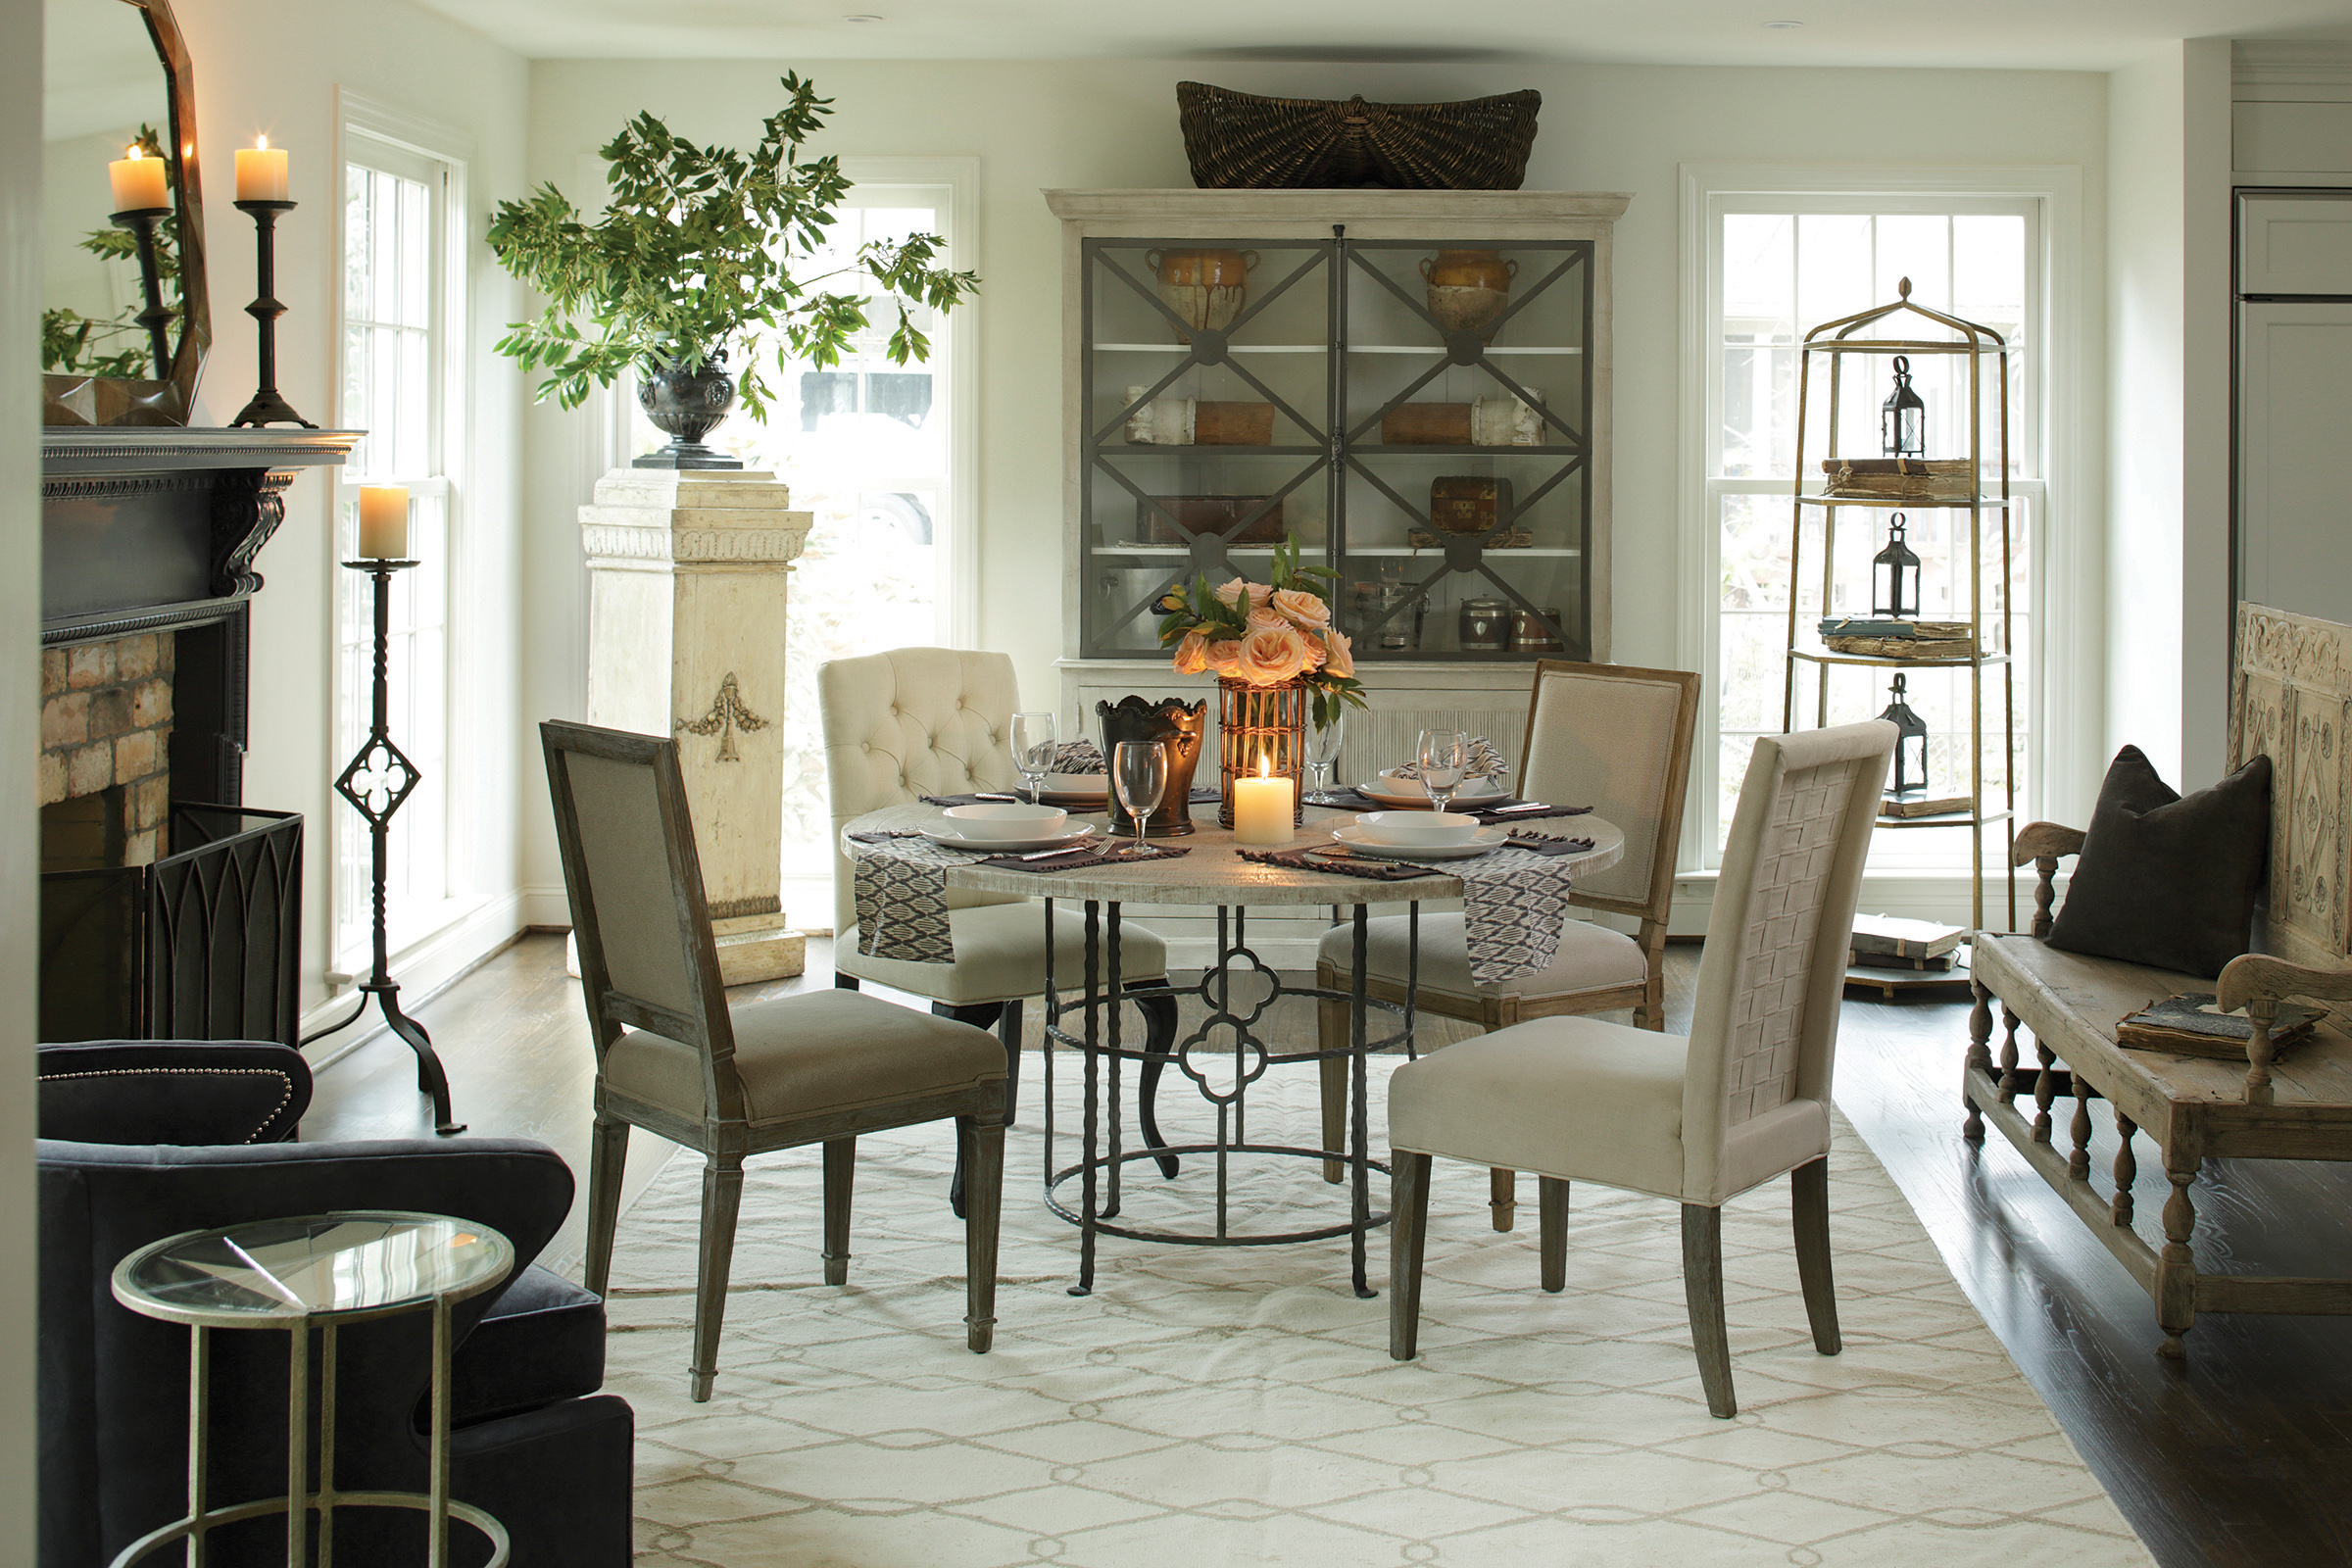 The Transitional Home: Traditional design meets modern style | Gabby